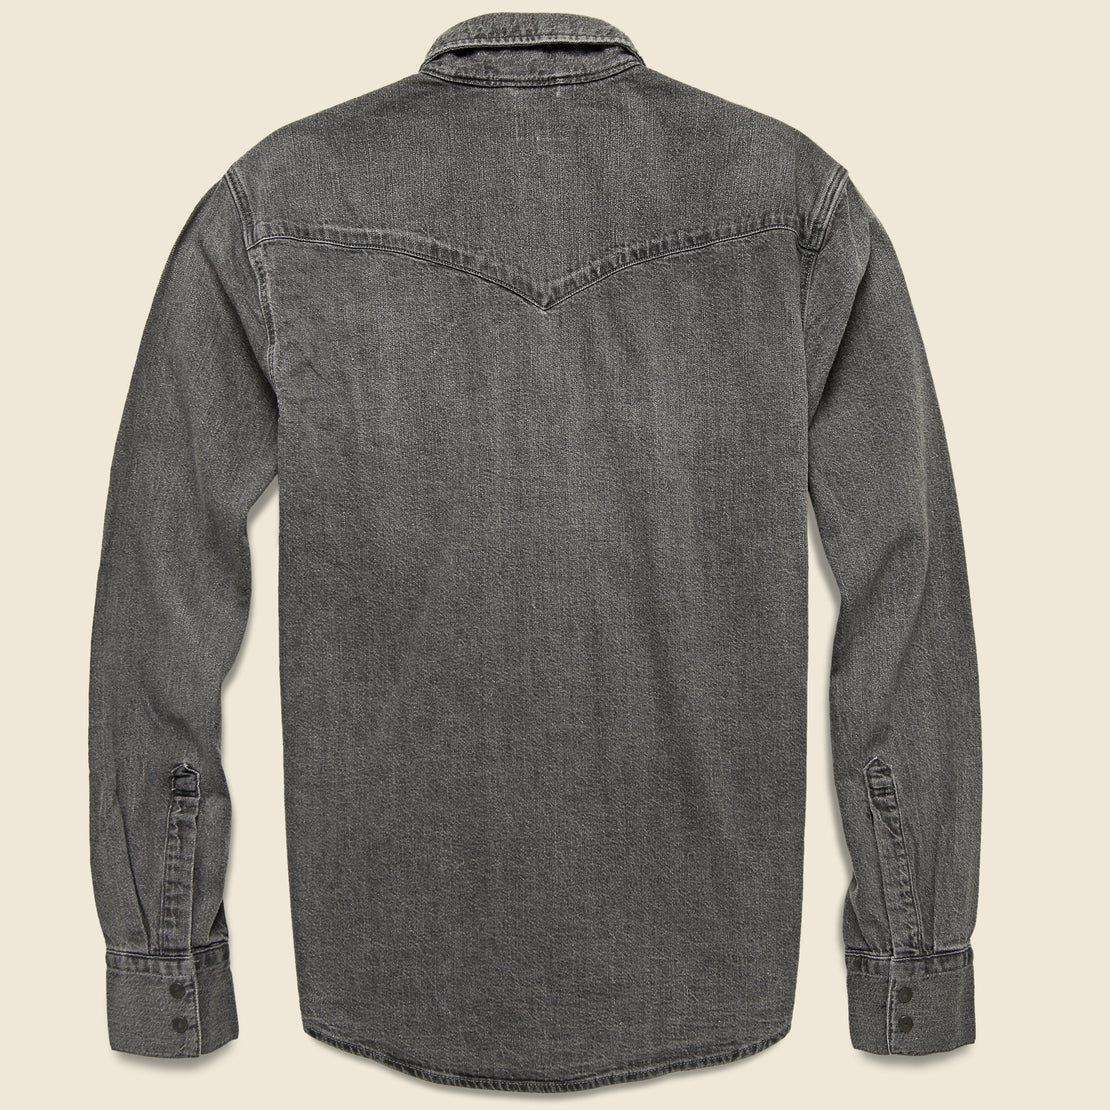 Barstow Western Denim Shirt - Black Worn In